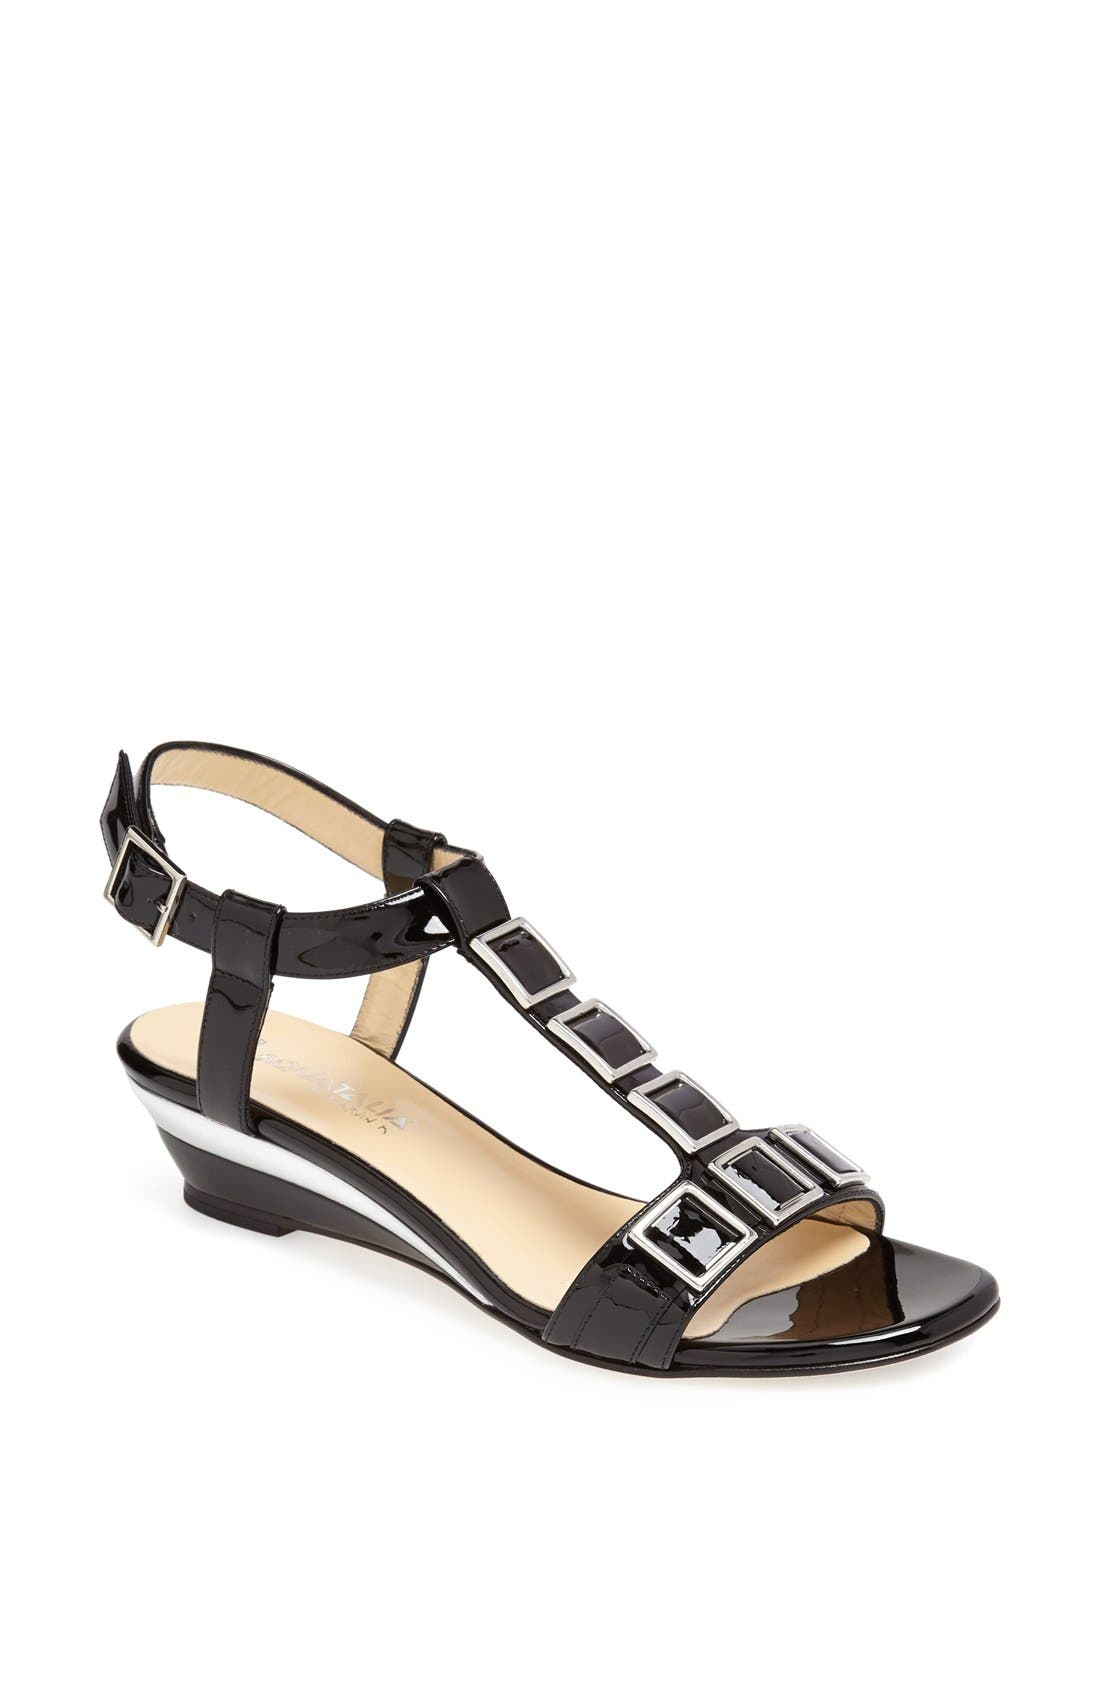 Alternate Image 1 Selected - Aquatalia 'Nella' Sandal